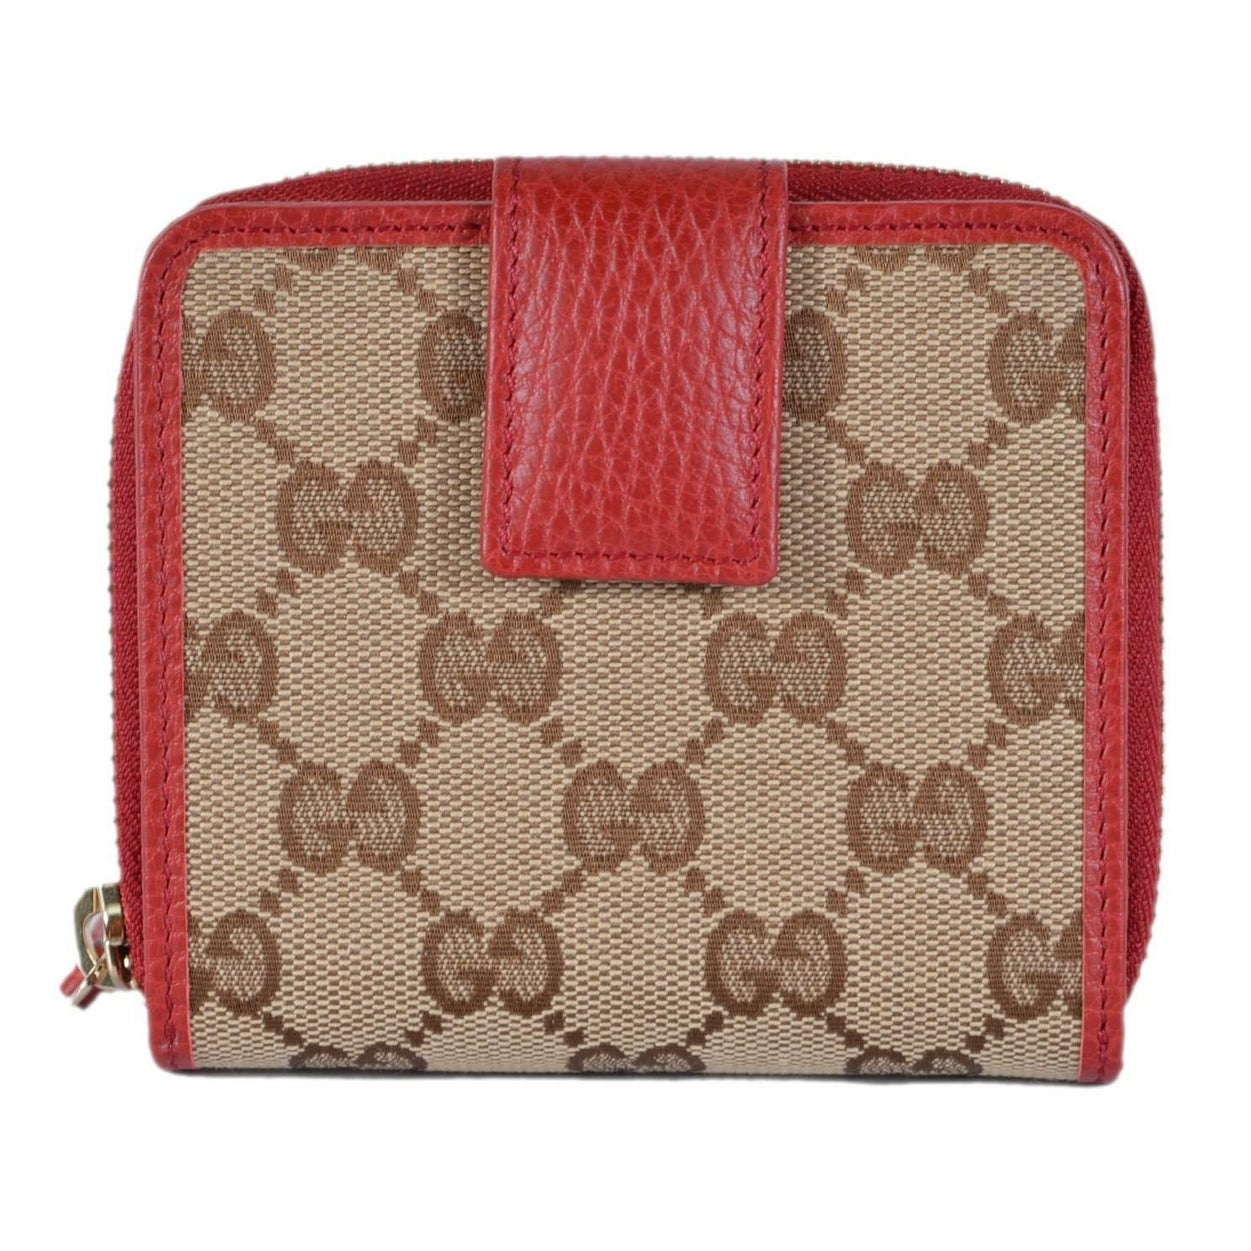 ea9a27856a59 Shop Gucci Women's 346056 Beige Red GG Guccissima French Zip Around Wallet  - 4